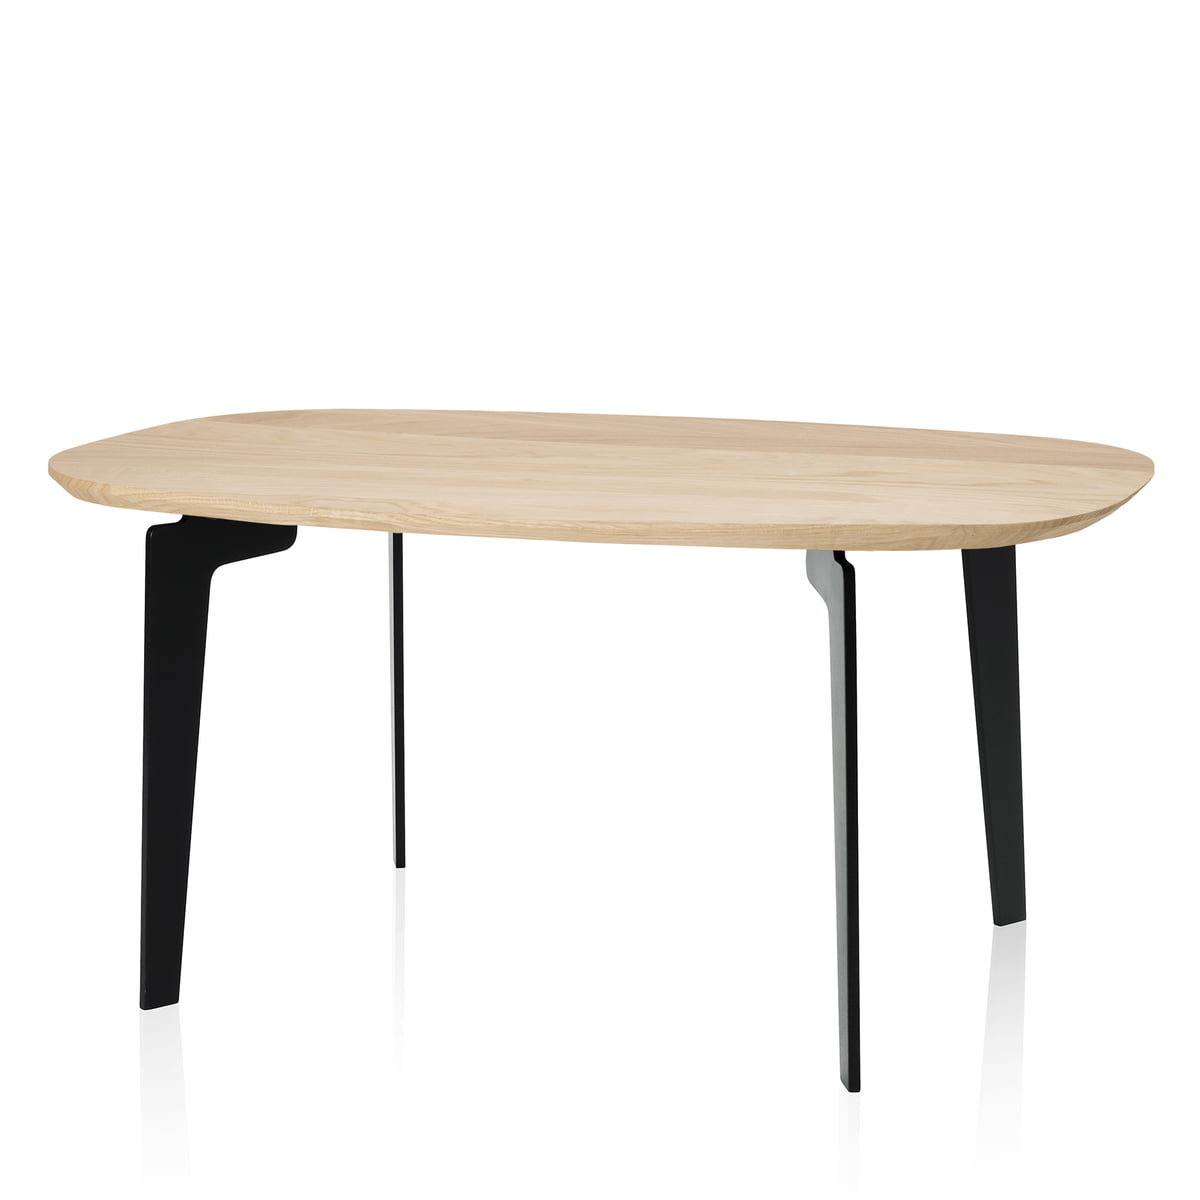 join fh21 coffee table by fritz hansen. Black Bedroom Furniture Sets. Home Design Ideas